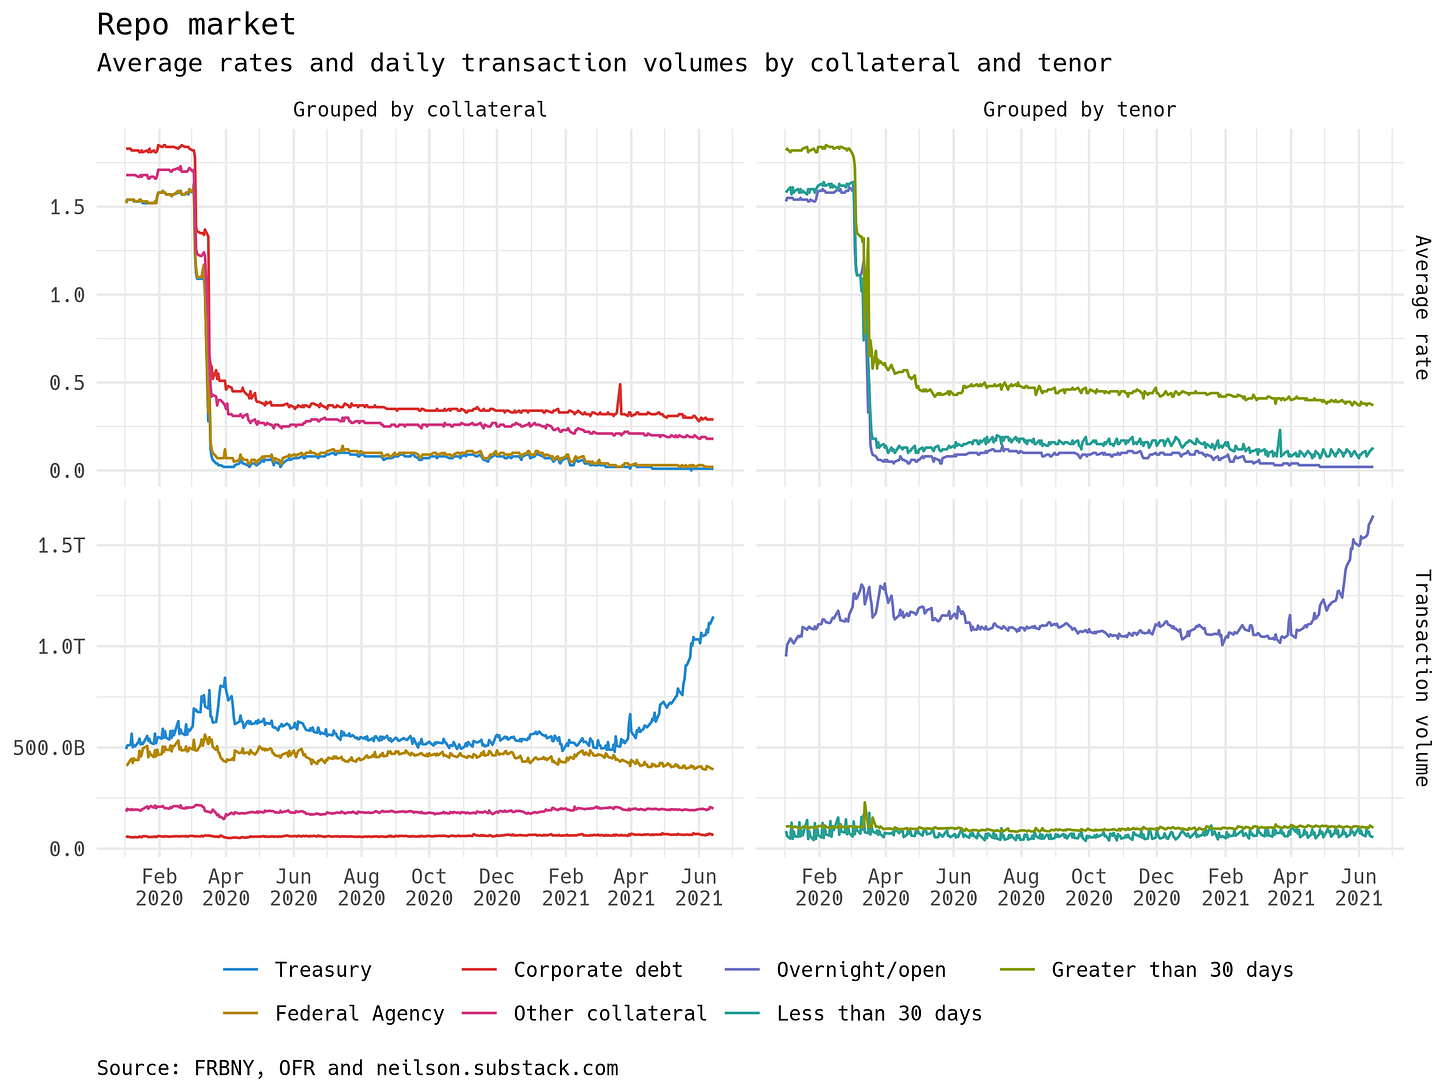 Graph showing repo rates by collateral and tenor in the upper half, and transaction volumes by collateral and tenor in the lower half.